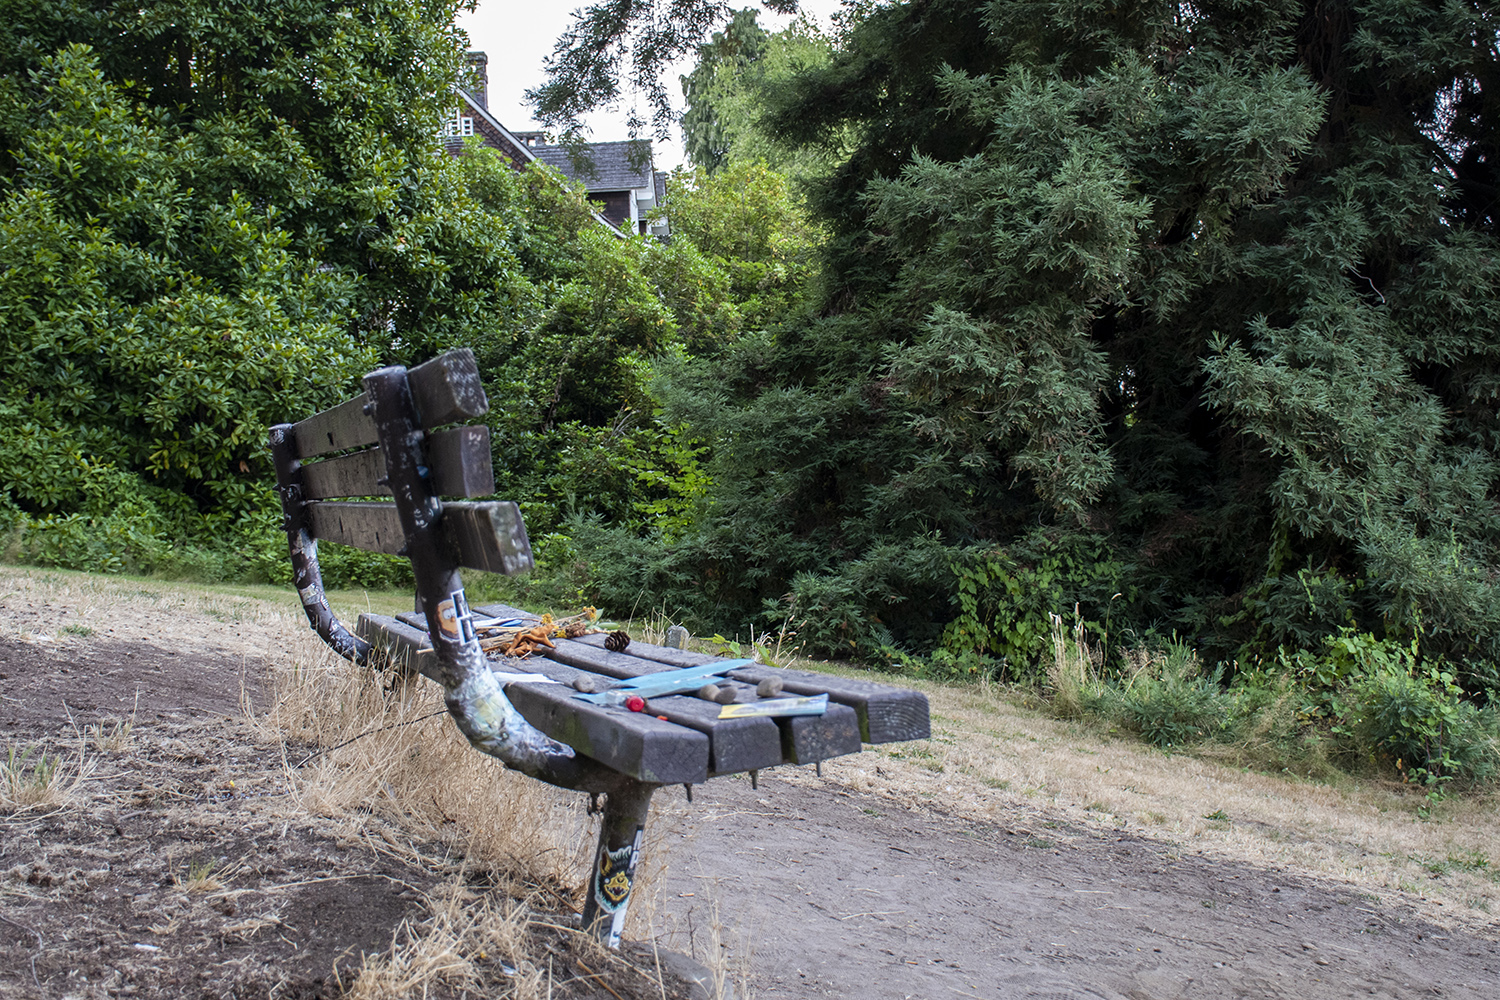 Take a stroll through Viretta Park where Nirvana frontman, Kurt Cobain, was said to frequently sit and ponder life and lyrics. Perched on a hillside that overlooks Lake Washington, the weathered bench is lined with mementos, handwritten letters and fresh flowers to this day. (Image: Rachael Jones / Seattle Refined)